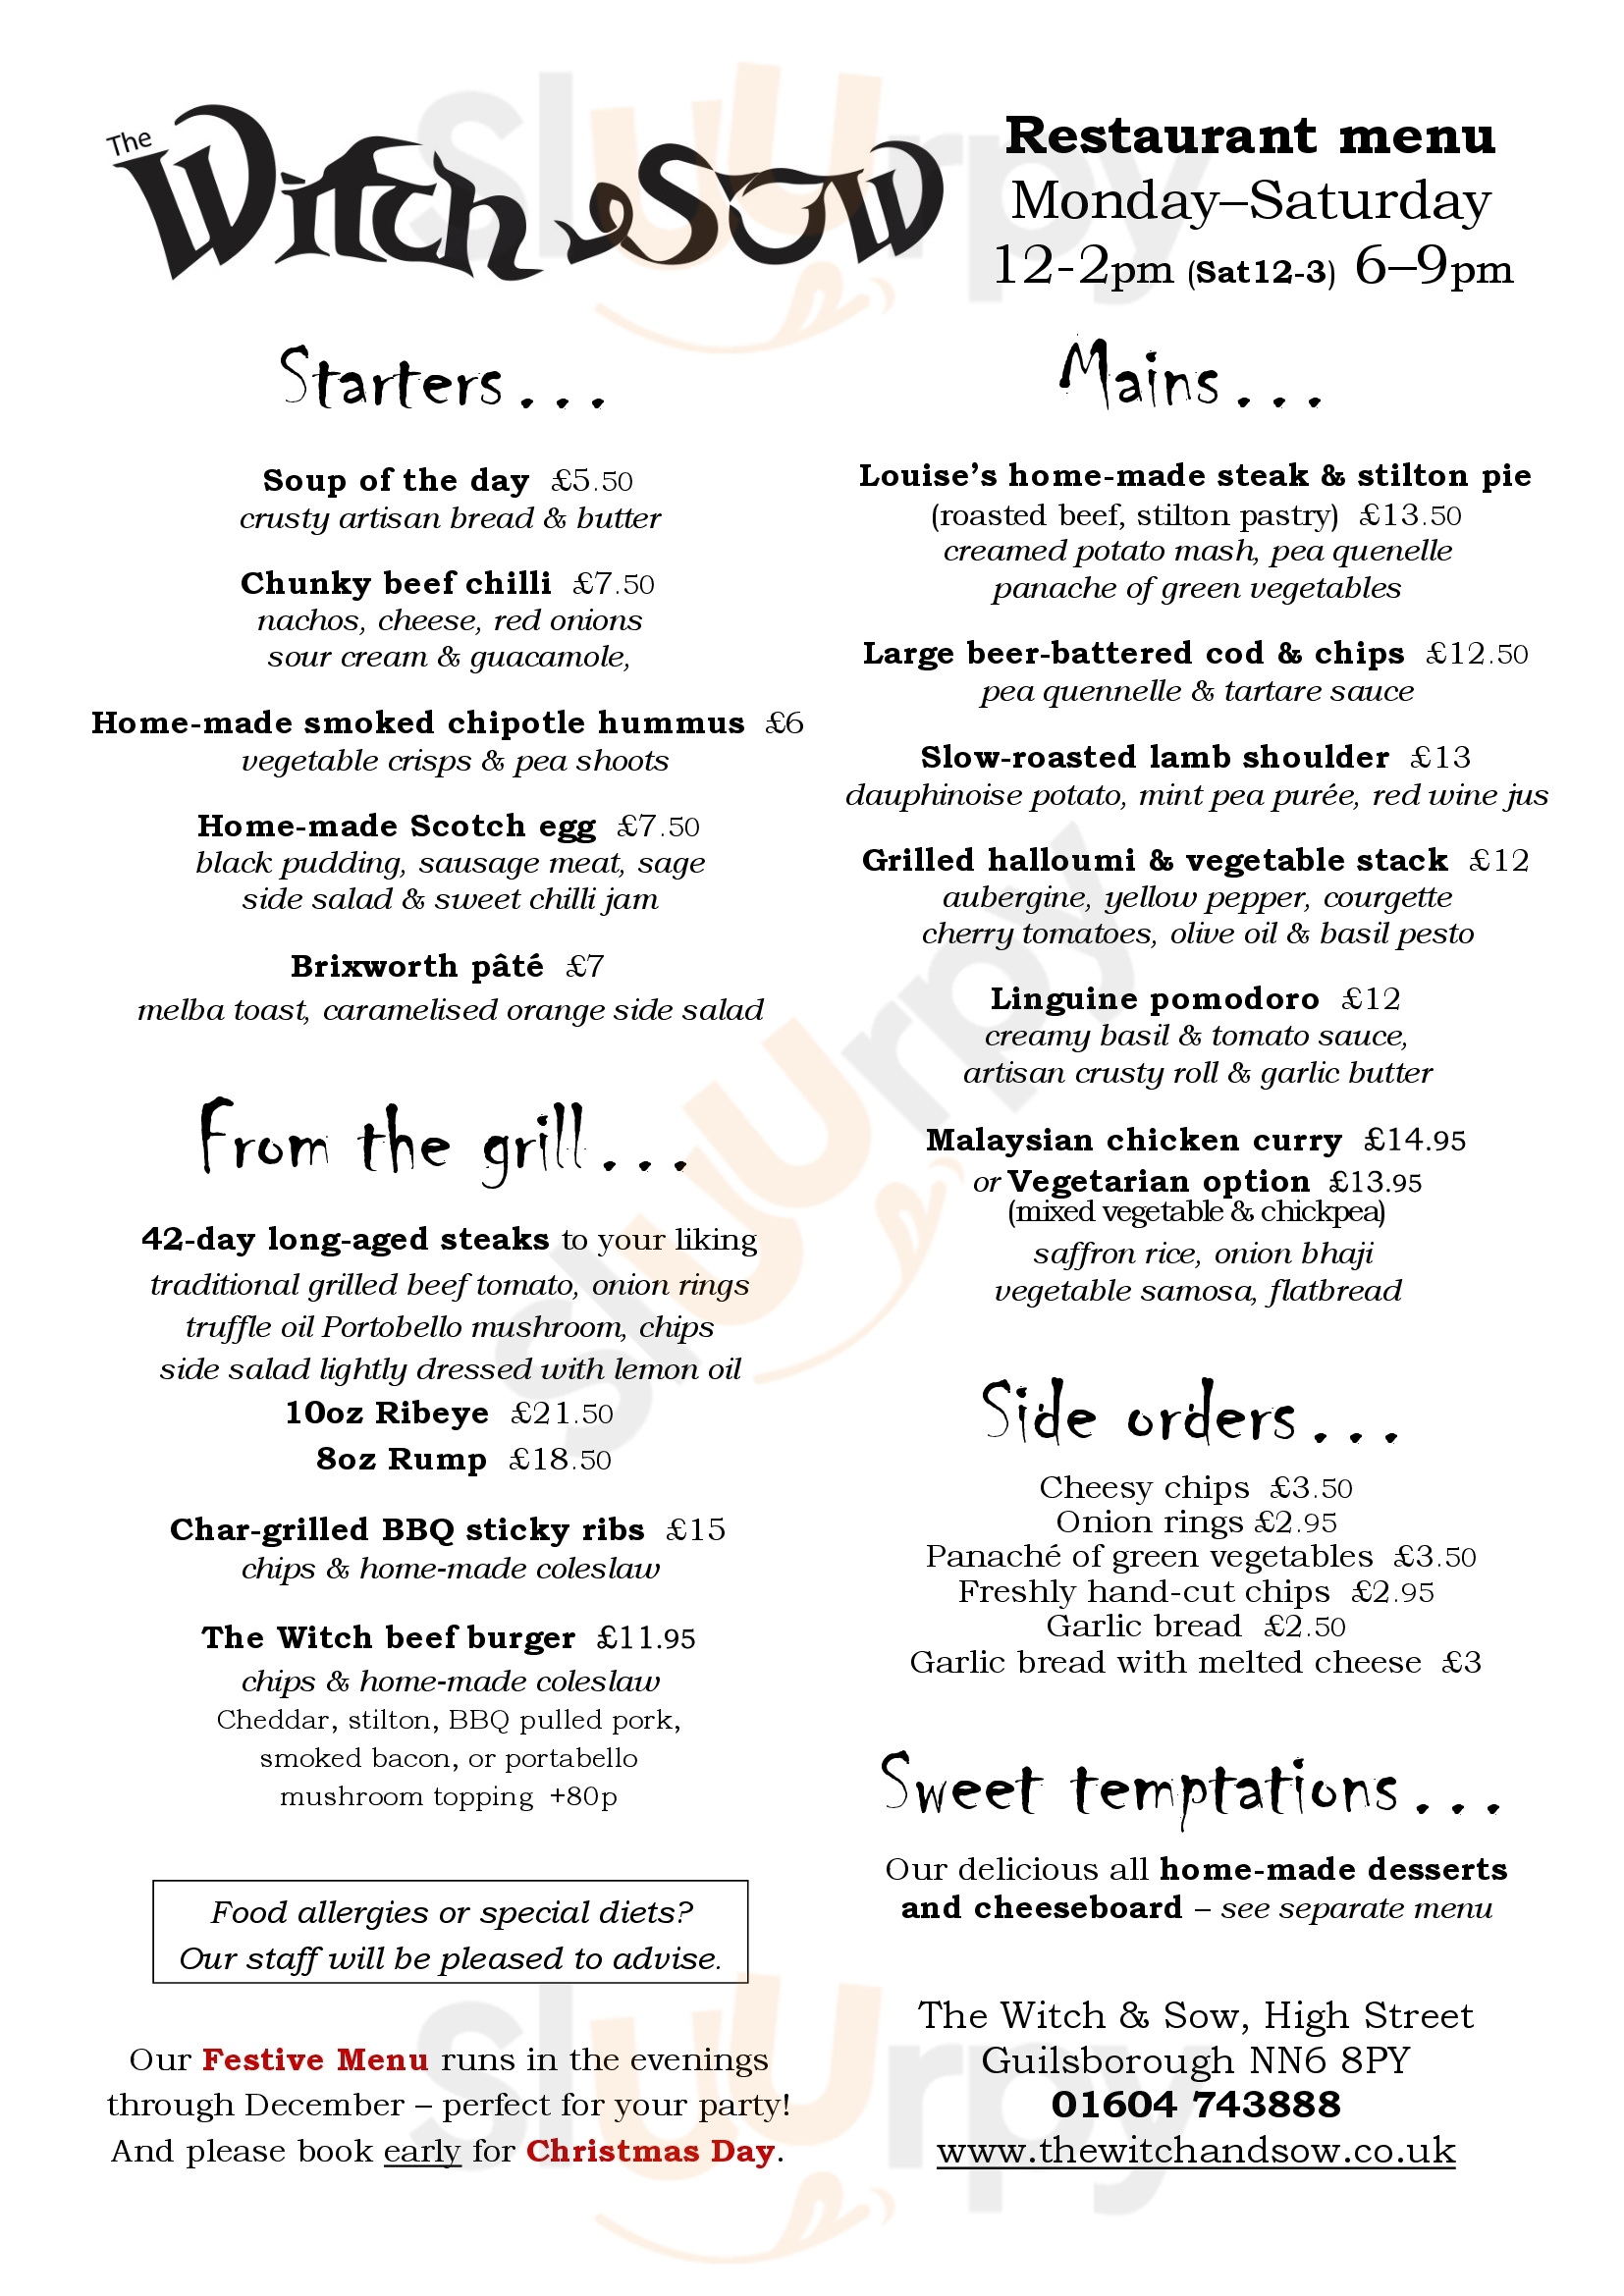 The Witch And Sow Public House Guilsborough Menu - 1